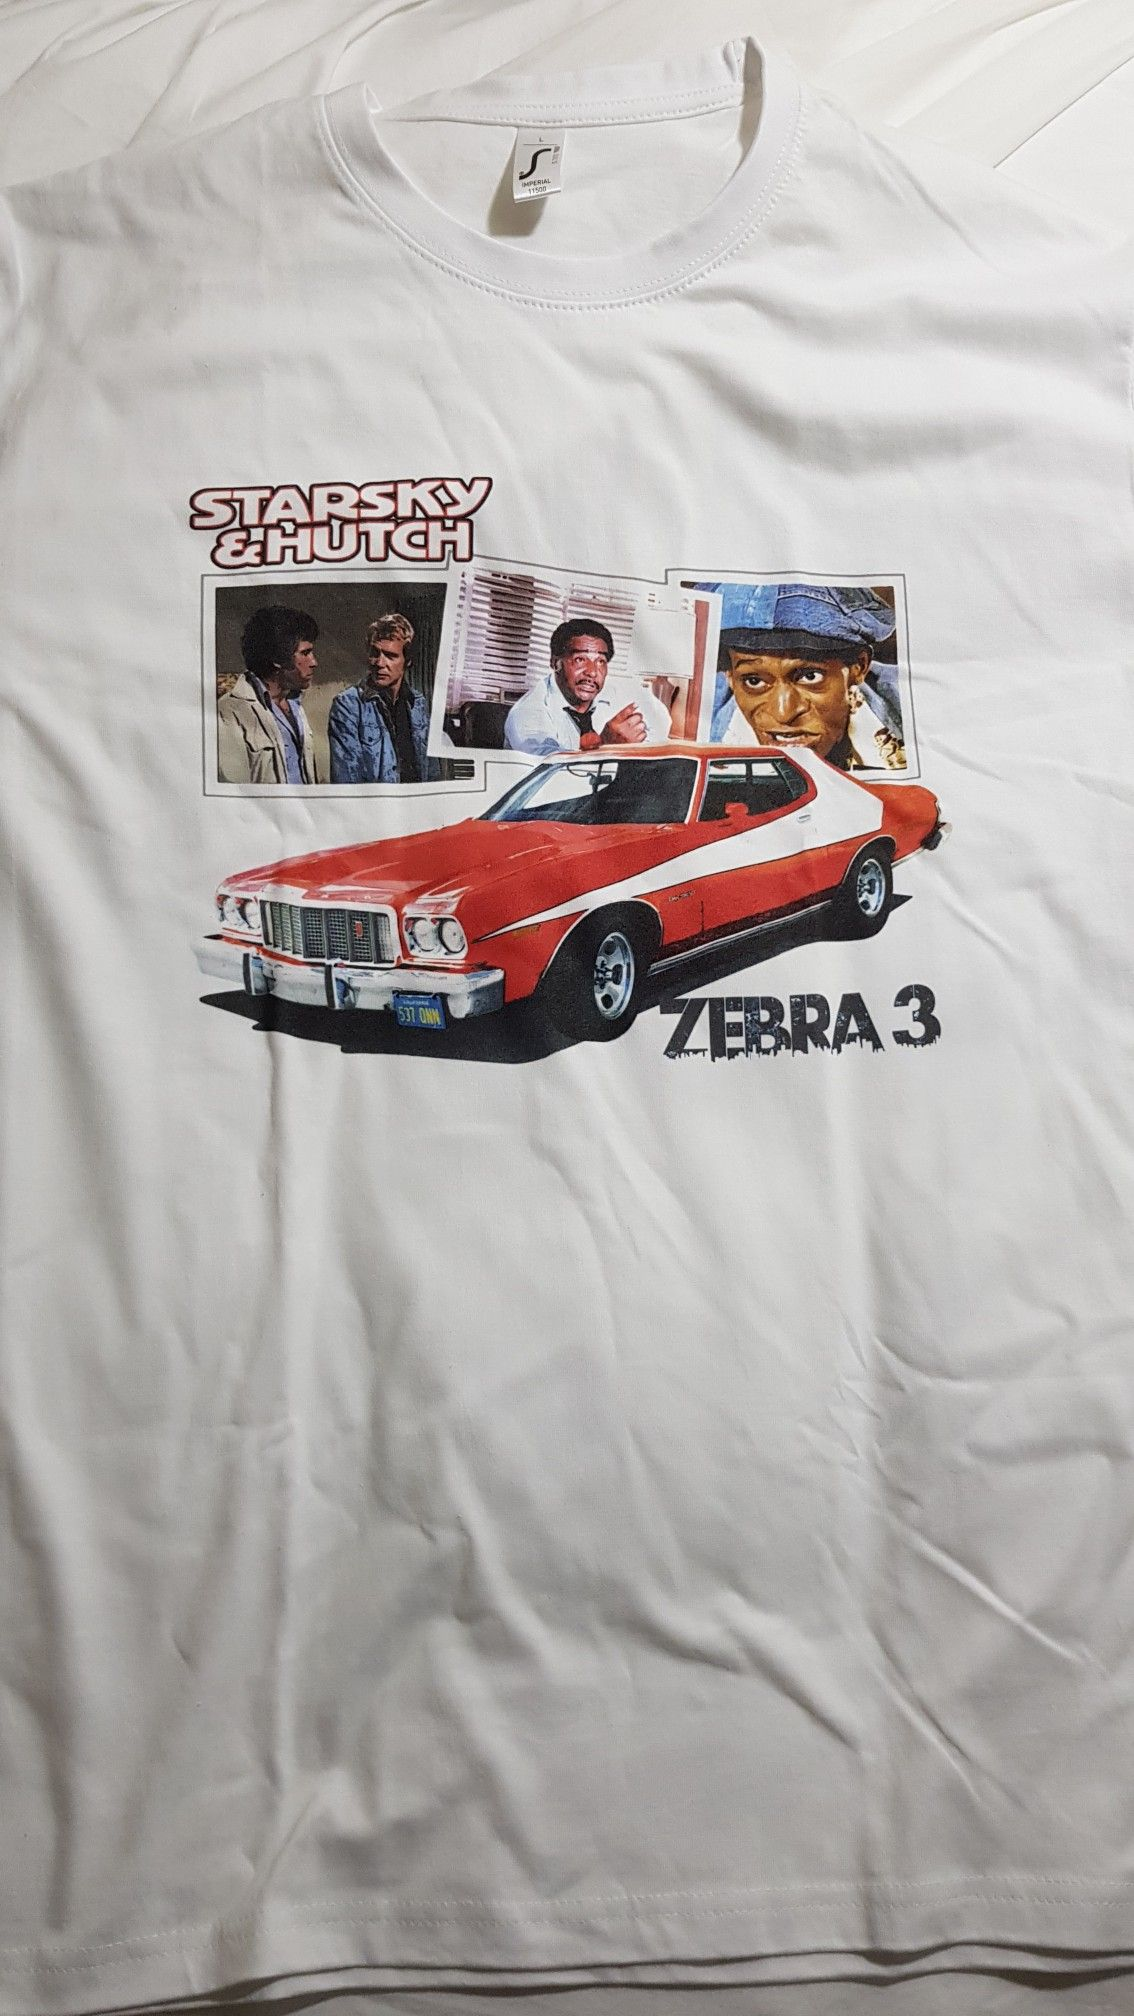 No he s Starsky I m Hutch 20 Years of t shirts